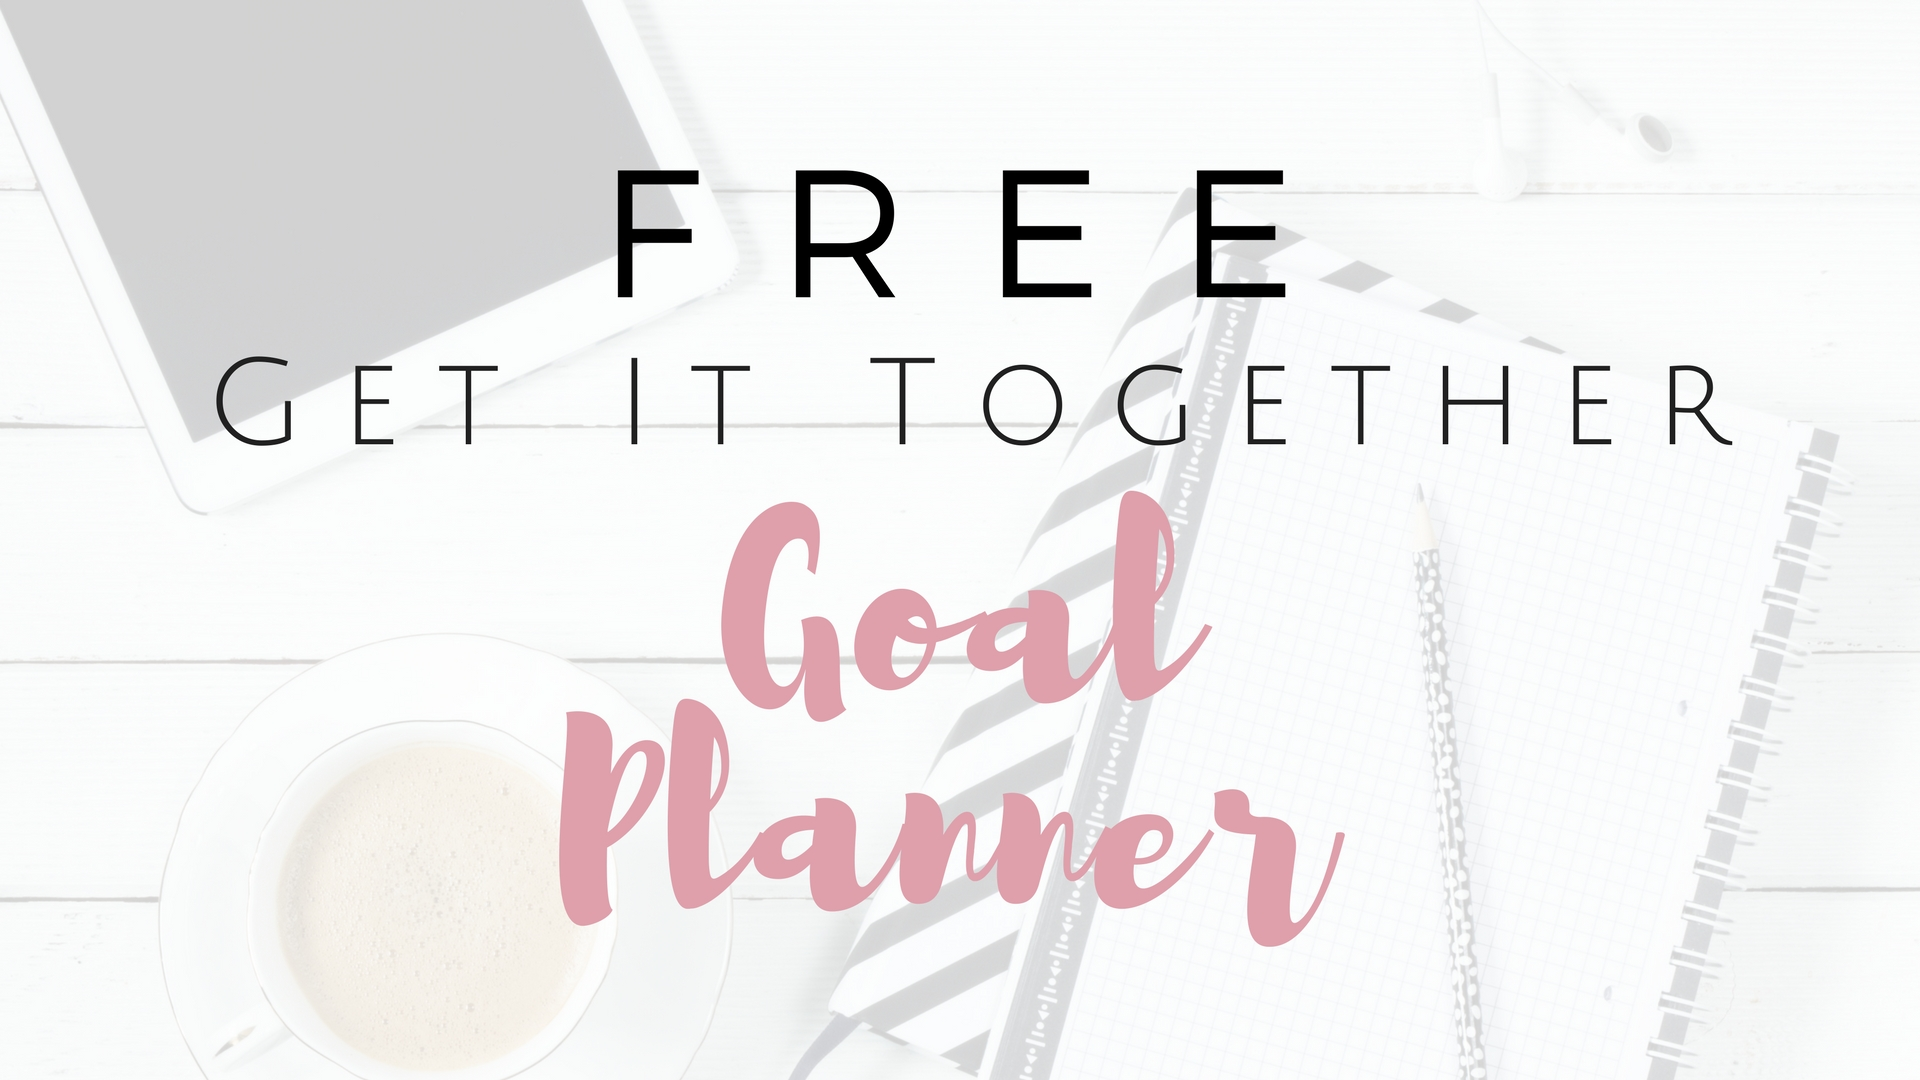 FREE Get It Together Goal Planner - Project Get It Together